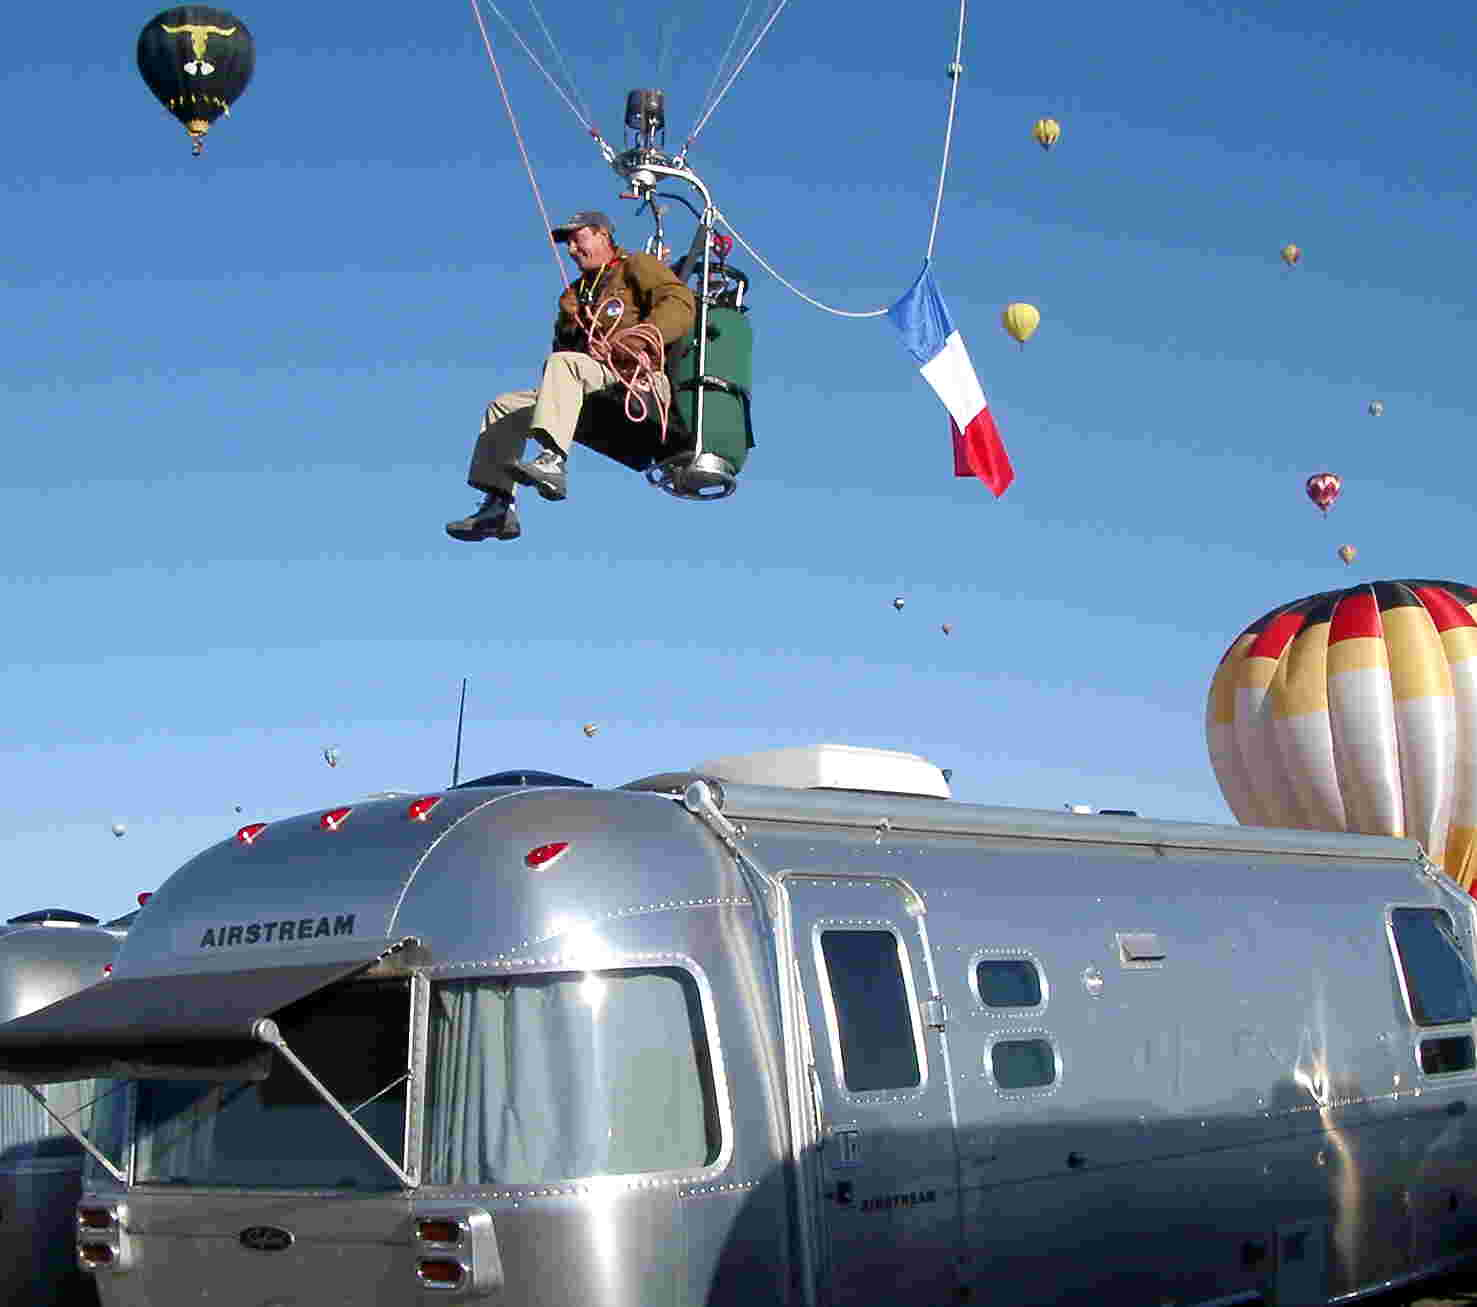 Click image for larger version  Name:Parisian balloonist buzzes airstream.jpg Views:81 Size:58.5 KB ID:69058